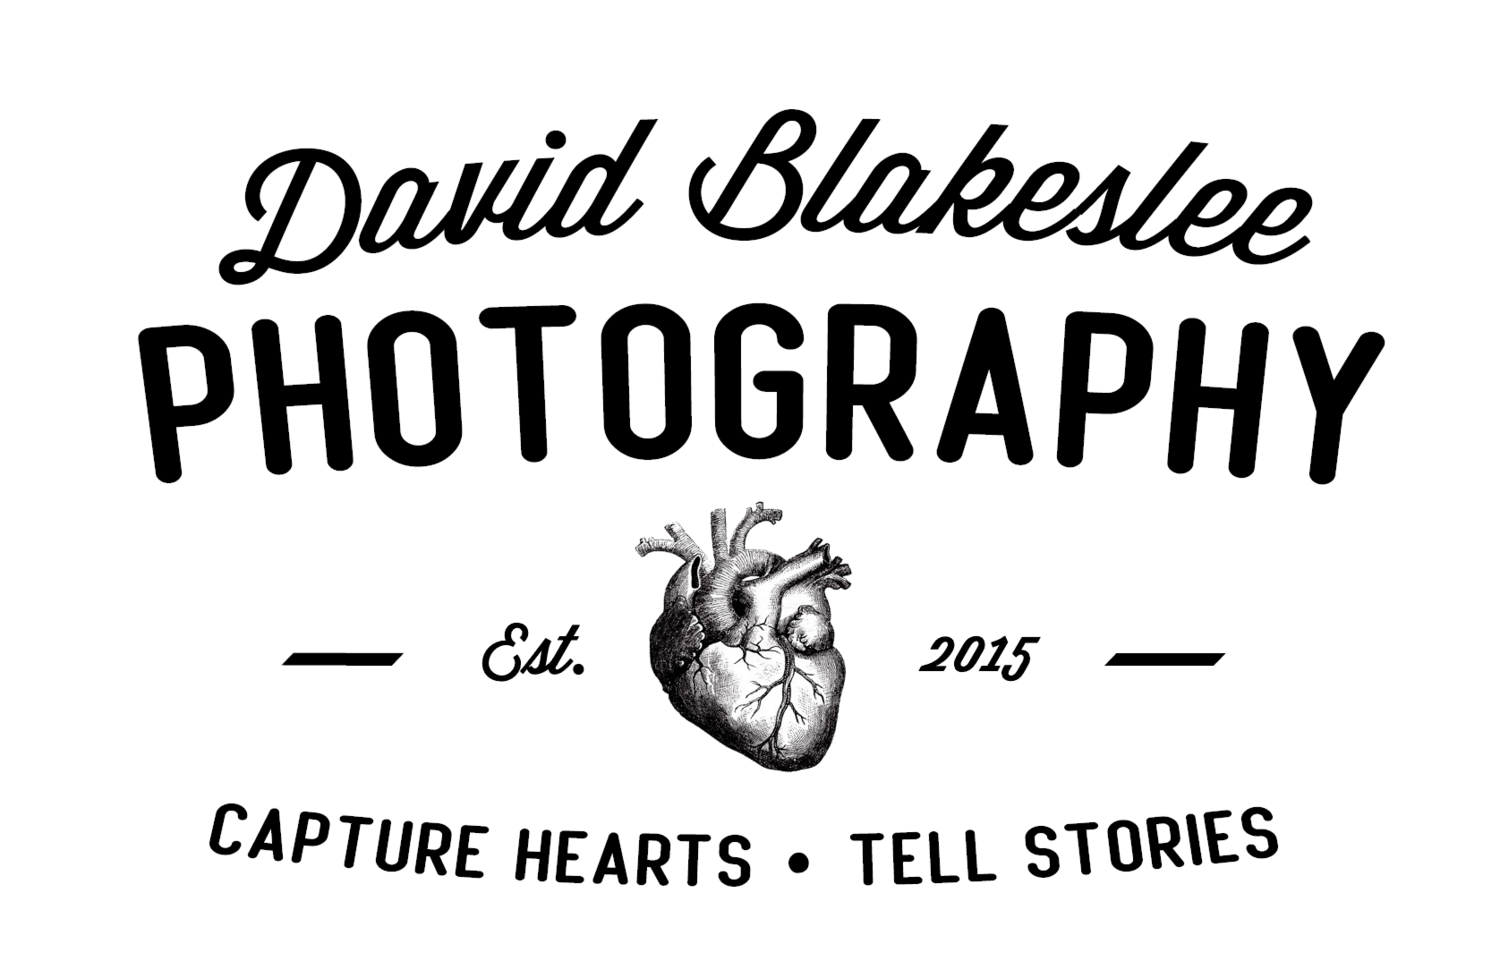 David Blakeslee Photography